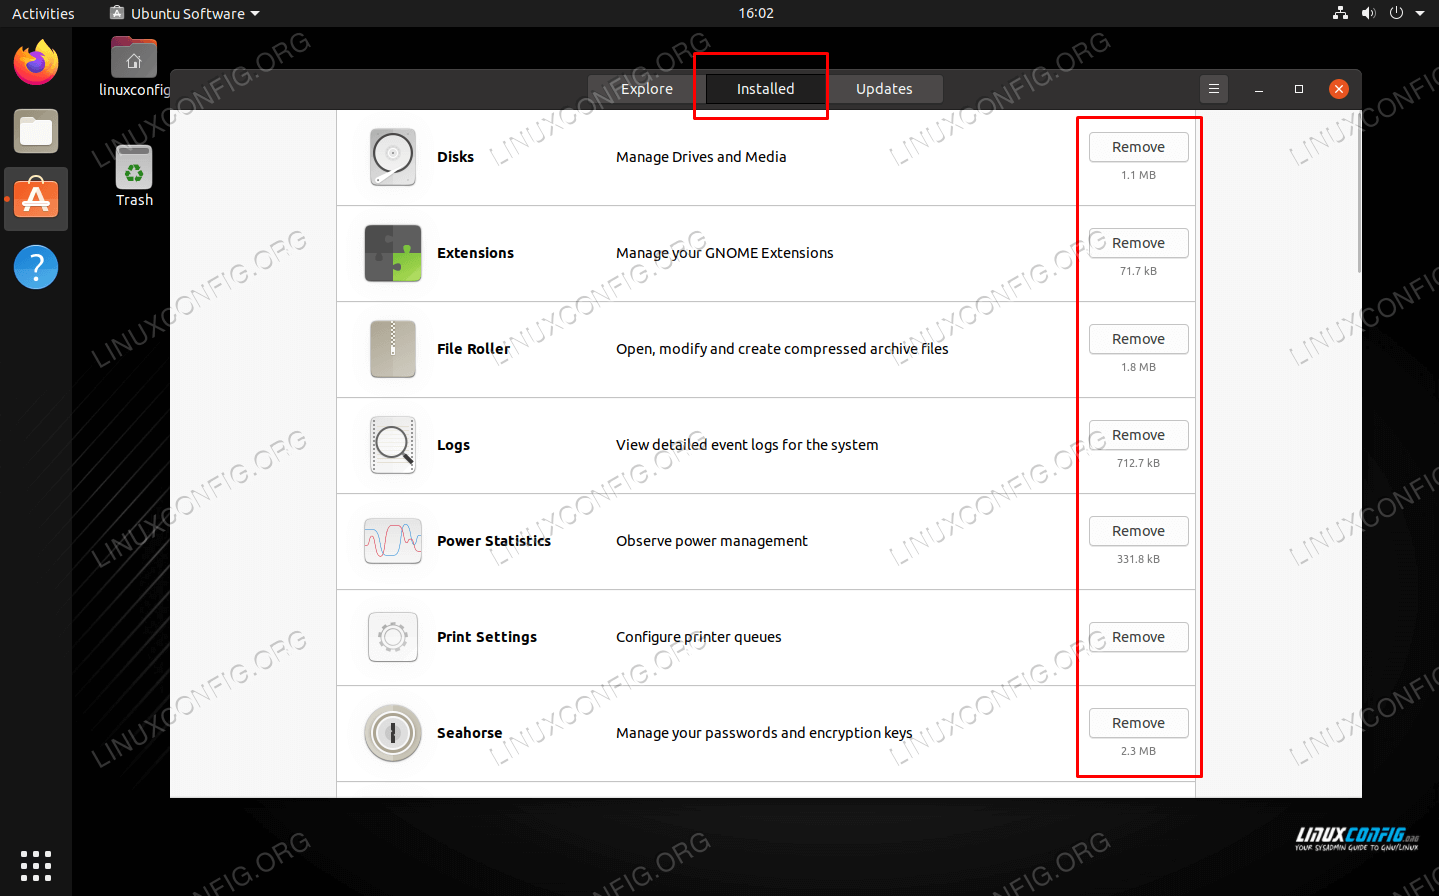 Use this menu to remove any listed package